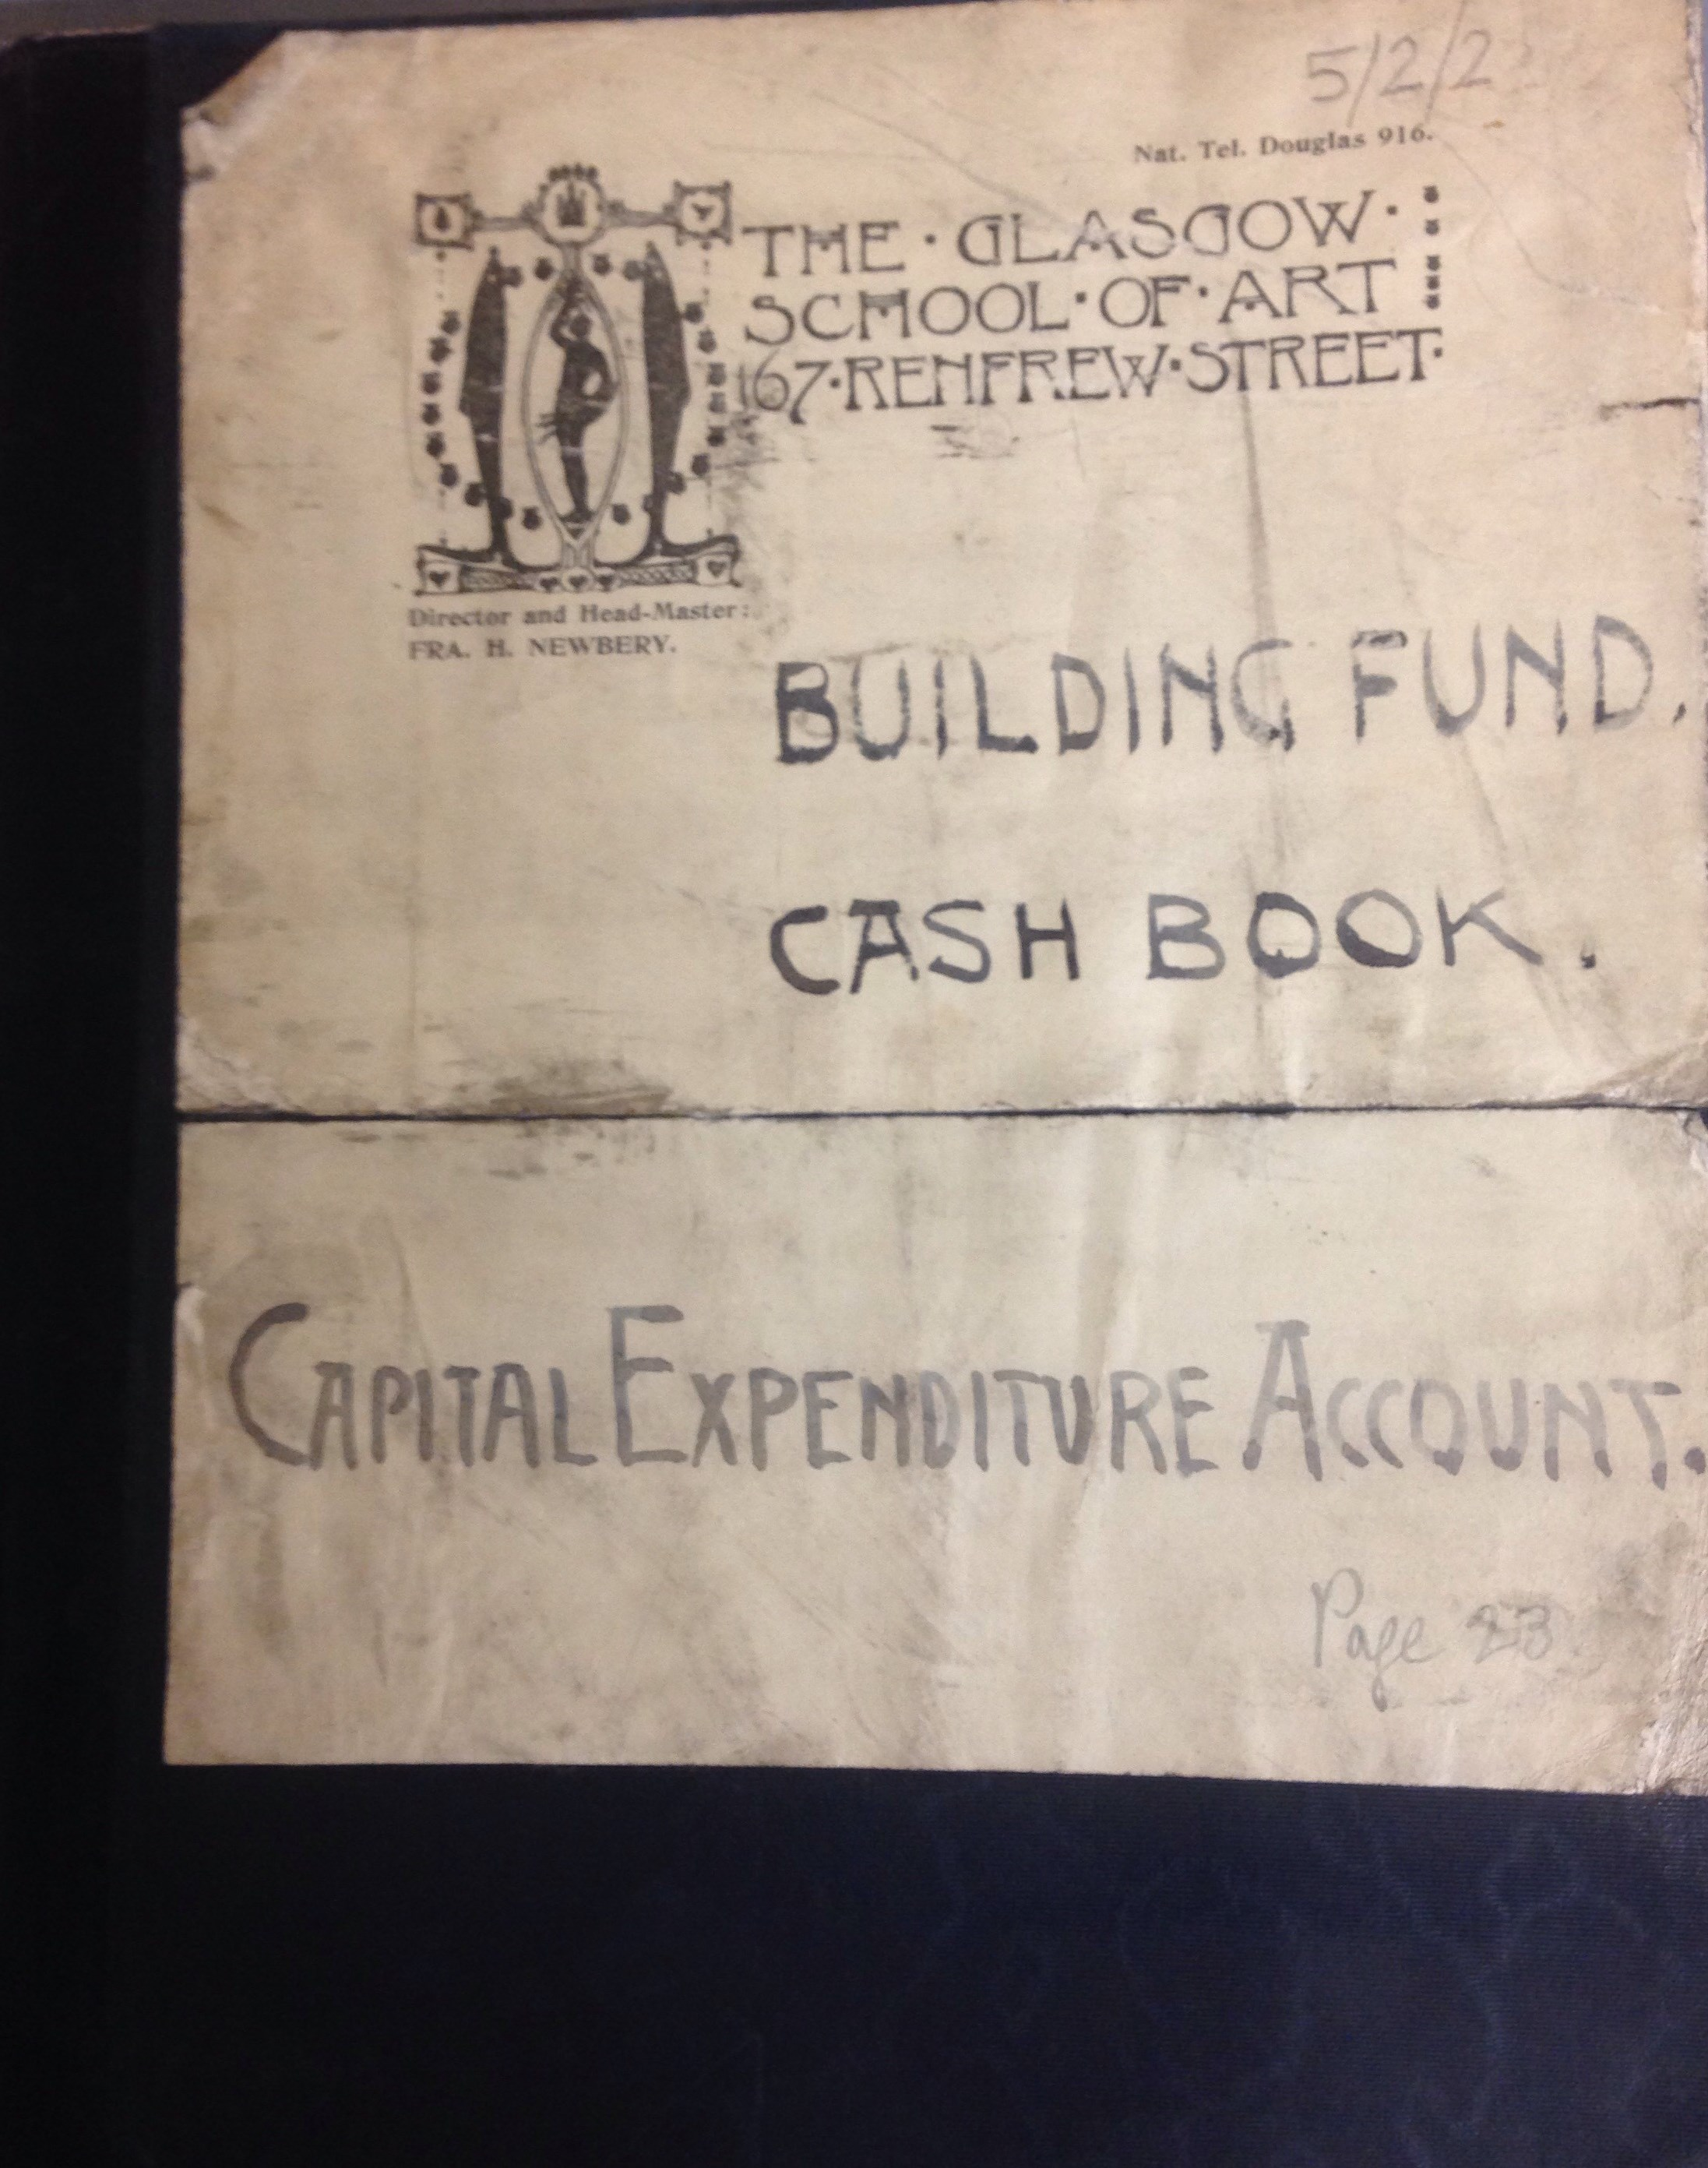 Record of the building fund for the Mackintosh Building from the Institutional records of GSoA (Archive Reference: GSAA/GOV/5/2/2